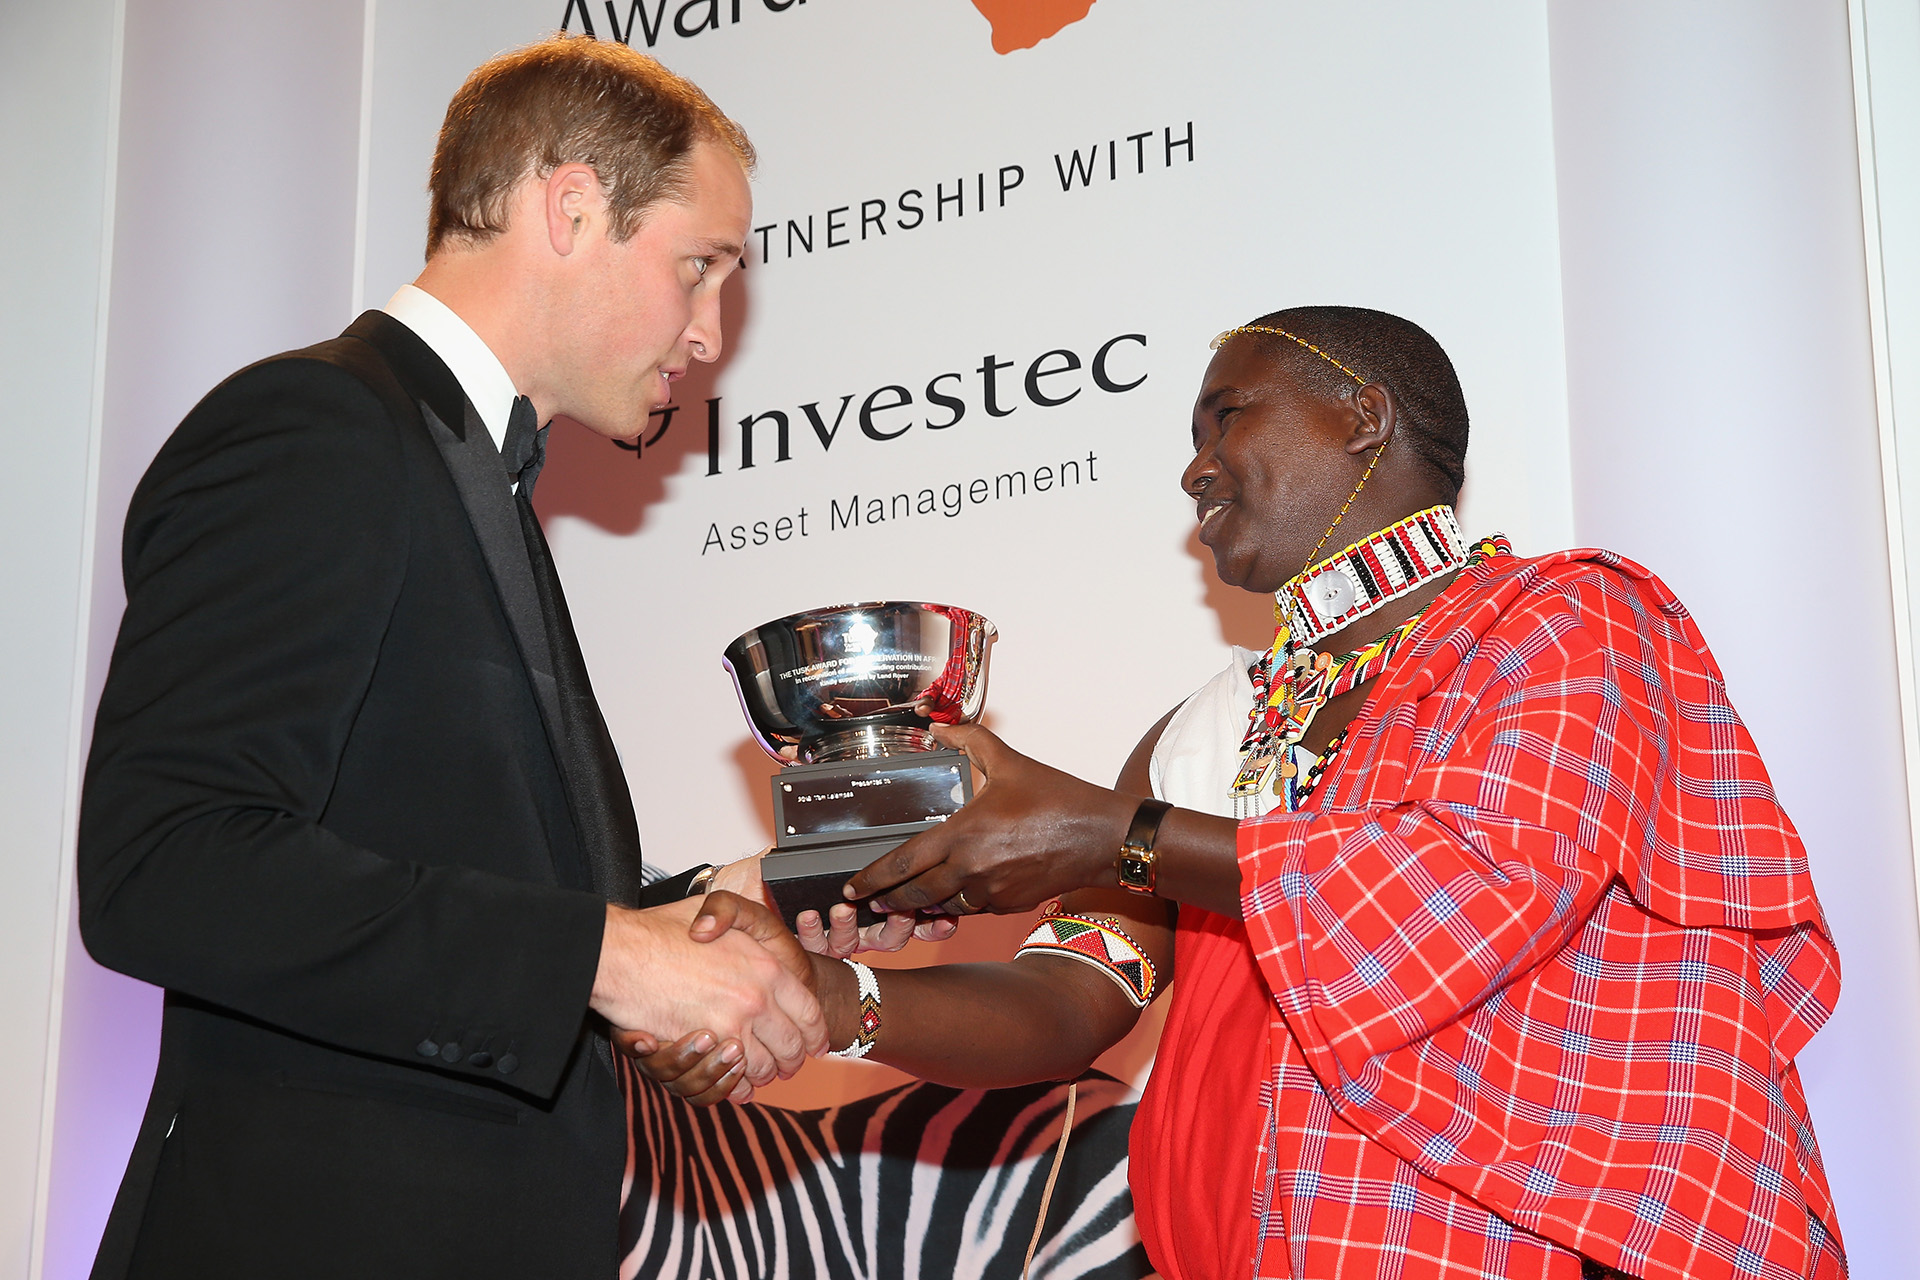 Tusk Conservation Award in Africa